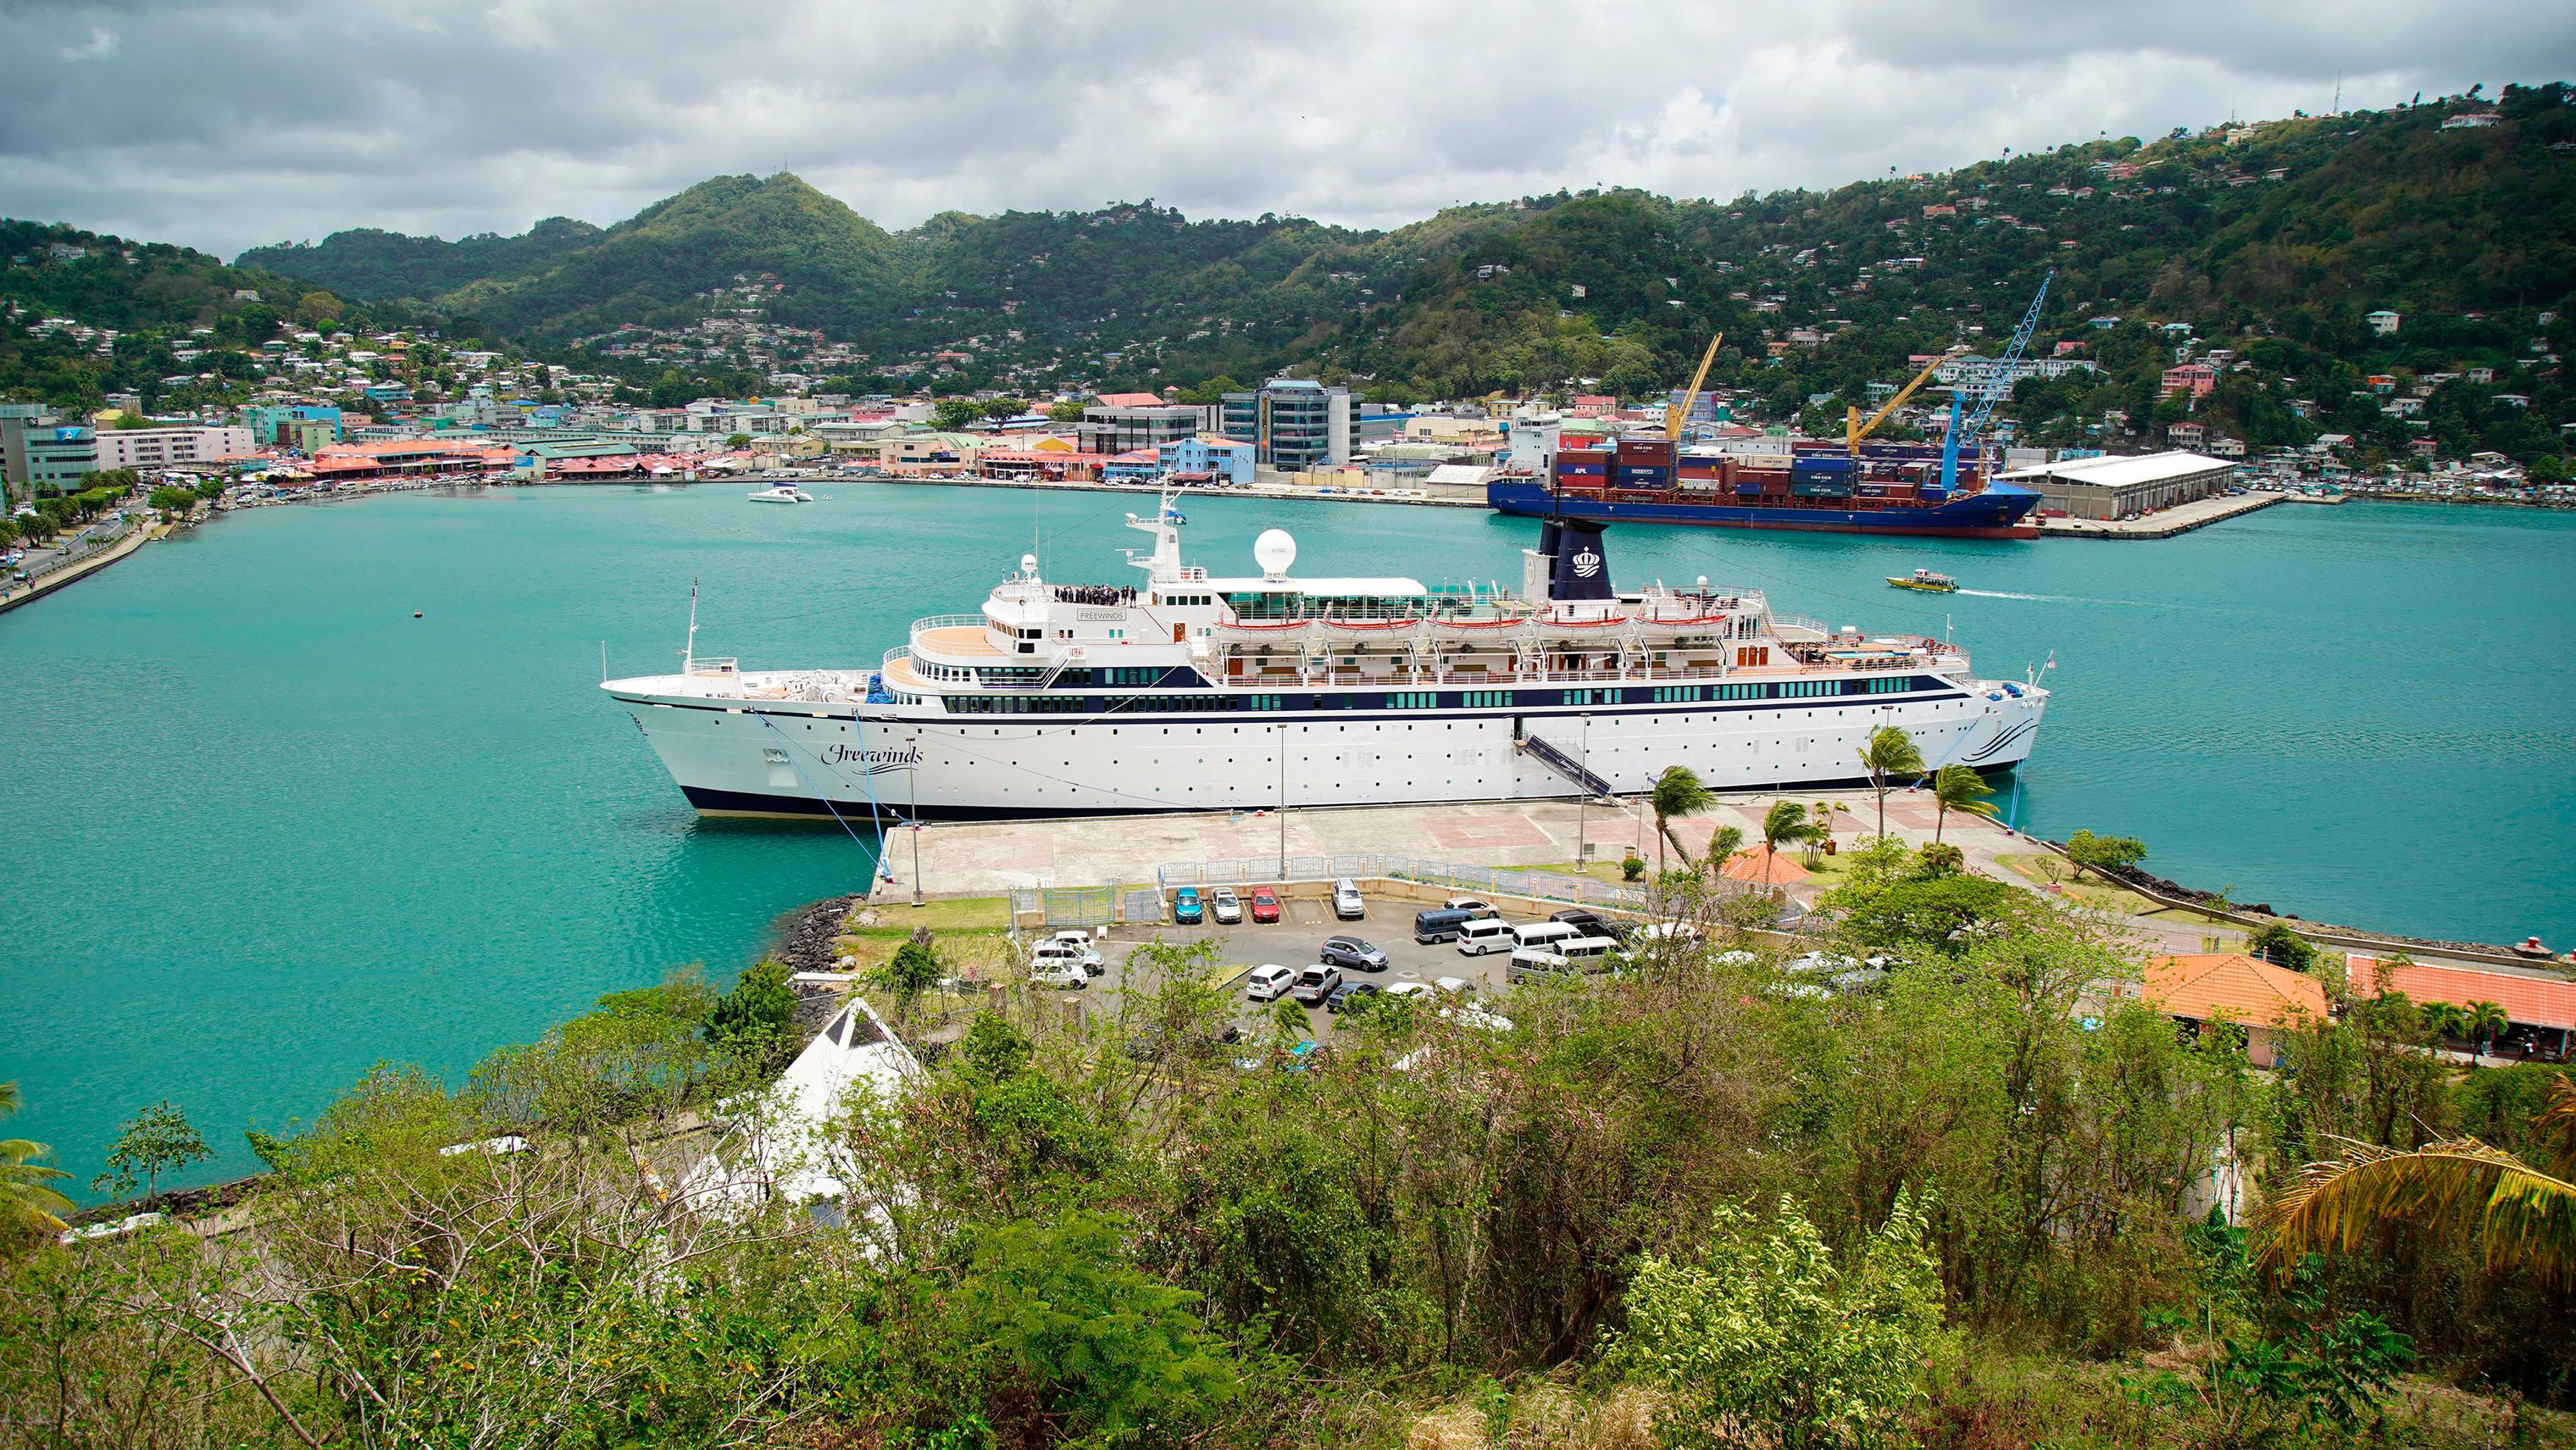 The Freewinds cruise ship is docked in the port of Castries, the capital of St. Lucia on May 2, 2019. Authorities in the eastern Caribbean island have quarantined the ship after discovering a confirmed case of measles aboard.